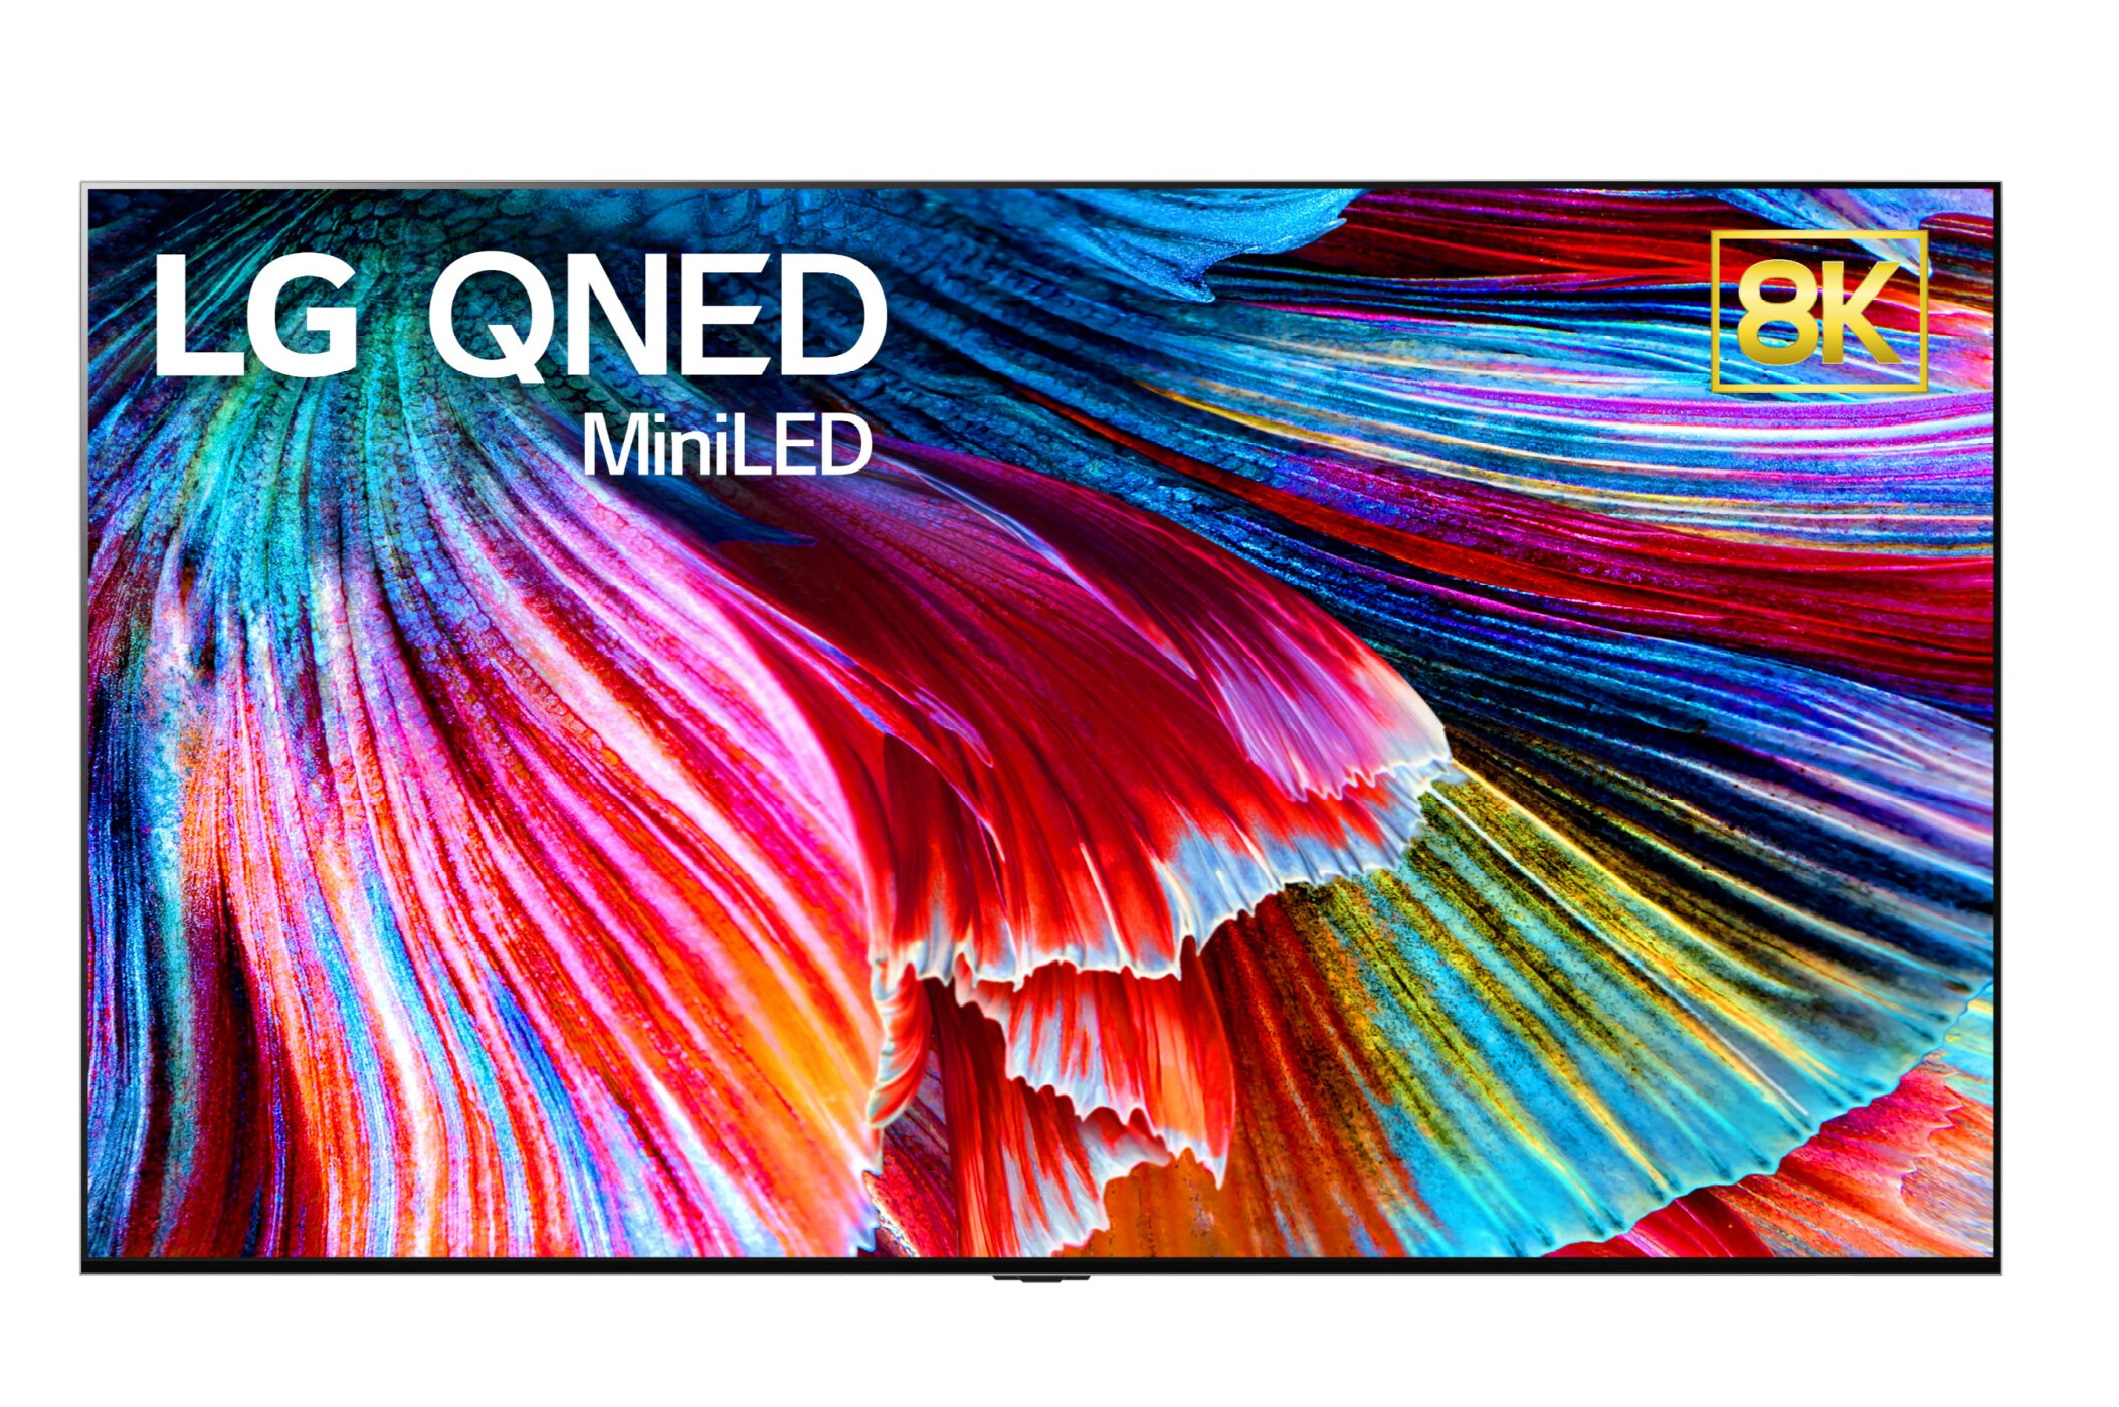 LG 8K QNED TV with Mini LED backlight delivers a range of colors on its screen with incredible accuracy and much deeper blacks